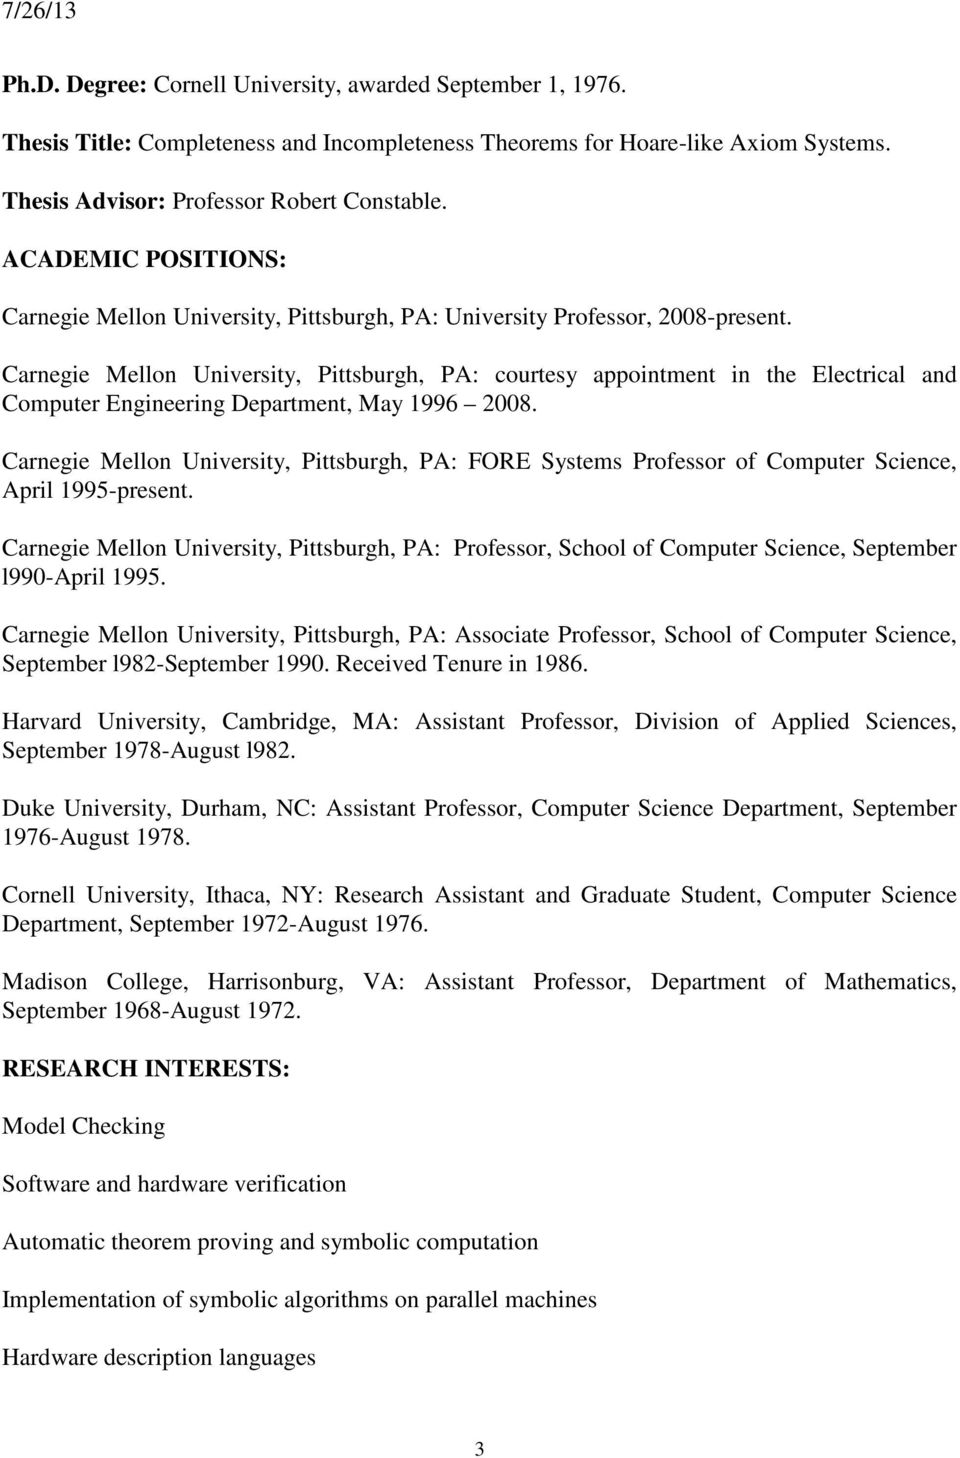 Carnegie Mellon University, Pittsburgh, PA: courtesy appointment in the Electrical and Computer Engineering Department, May 1996 2008.